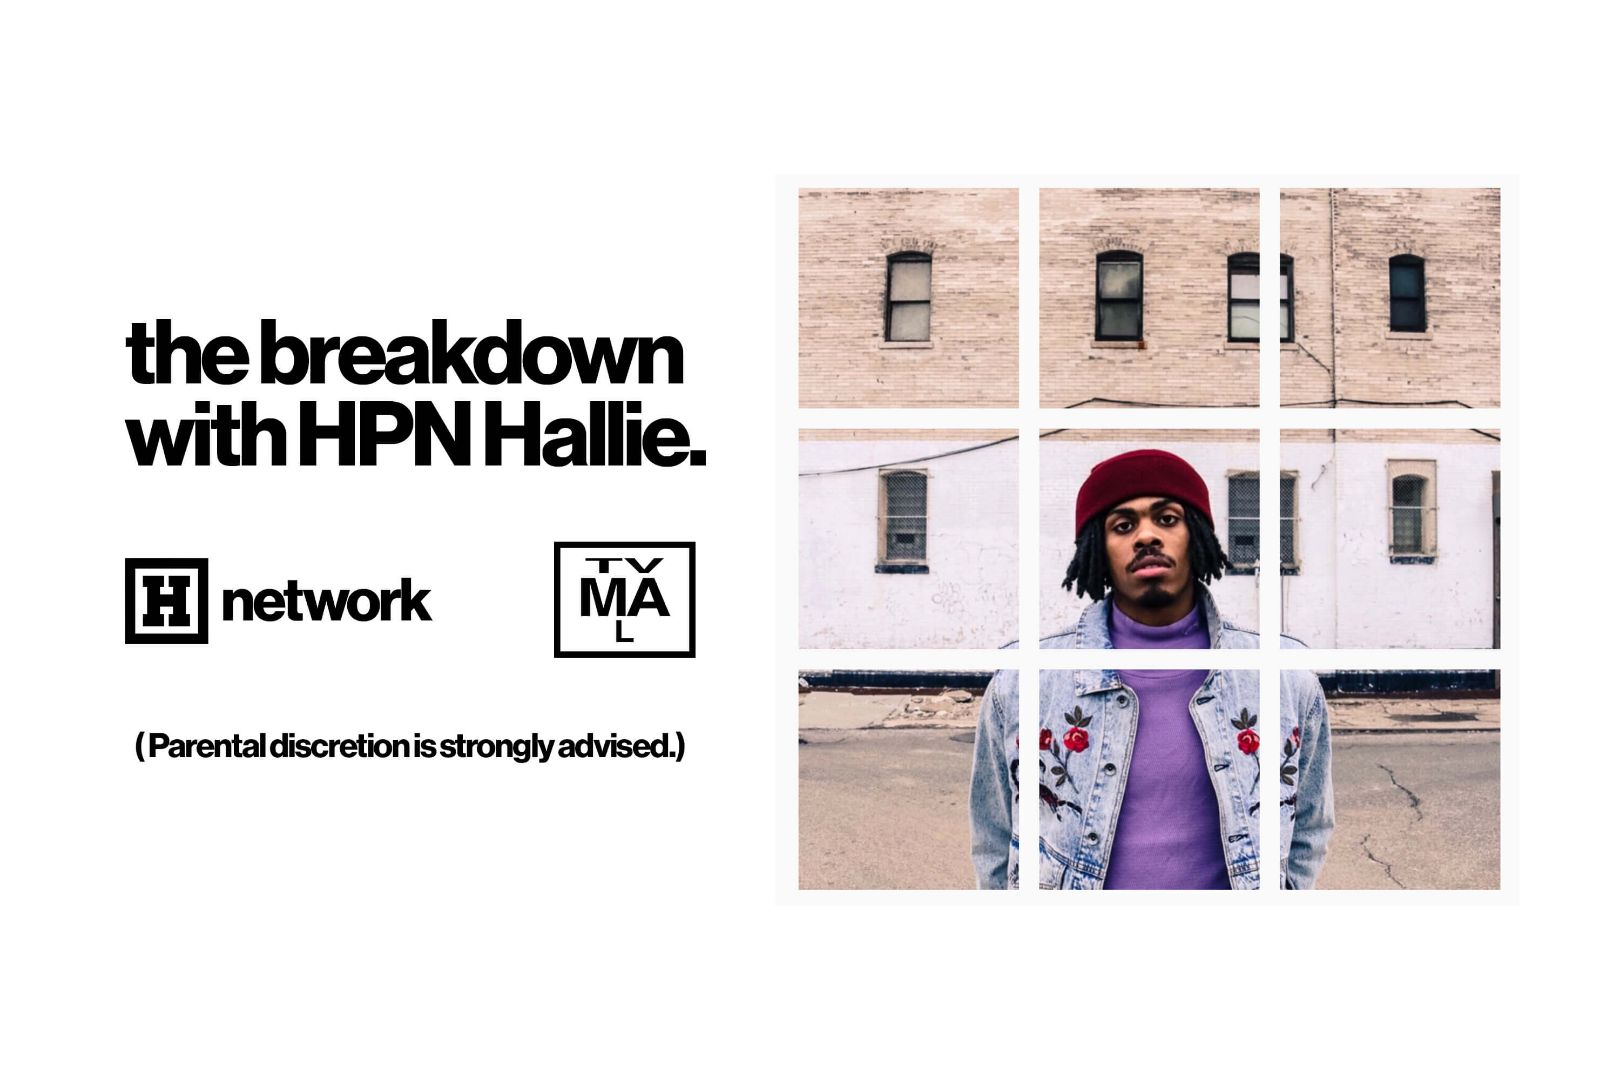 H Network The Breakdown With HPN Hallie